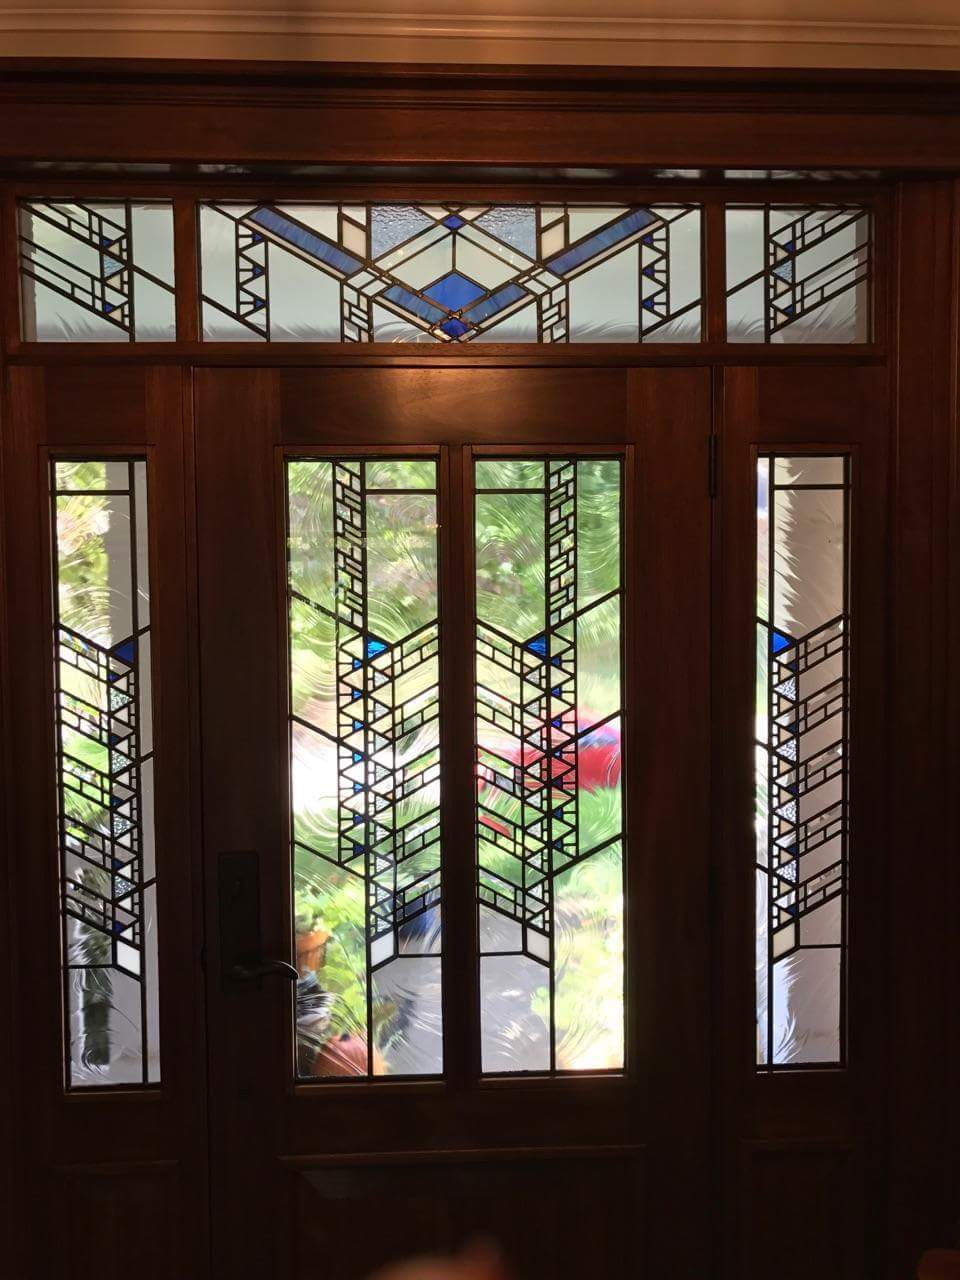 Months ago we designed and fabricated this Frank Lloyd Wright leaded glass door. Chad Lange designed and built the door. In May the client asked us to ... & Frank Lloyd Wright Style Leaded Glass | Laura Goff Designs